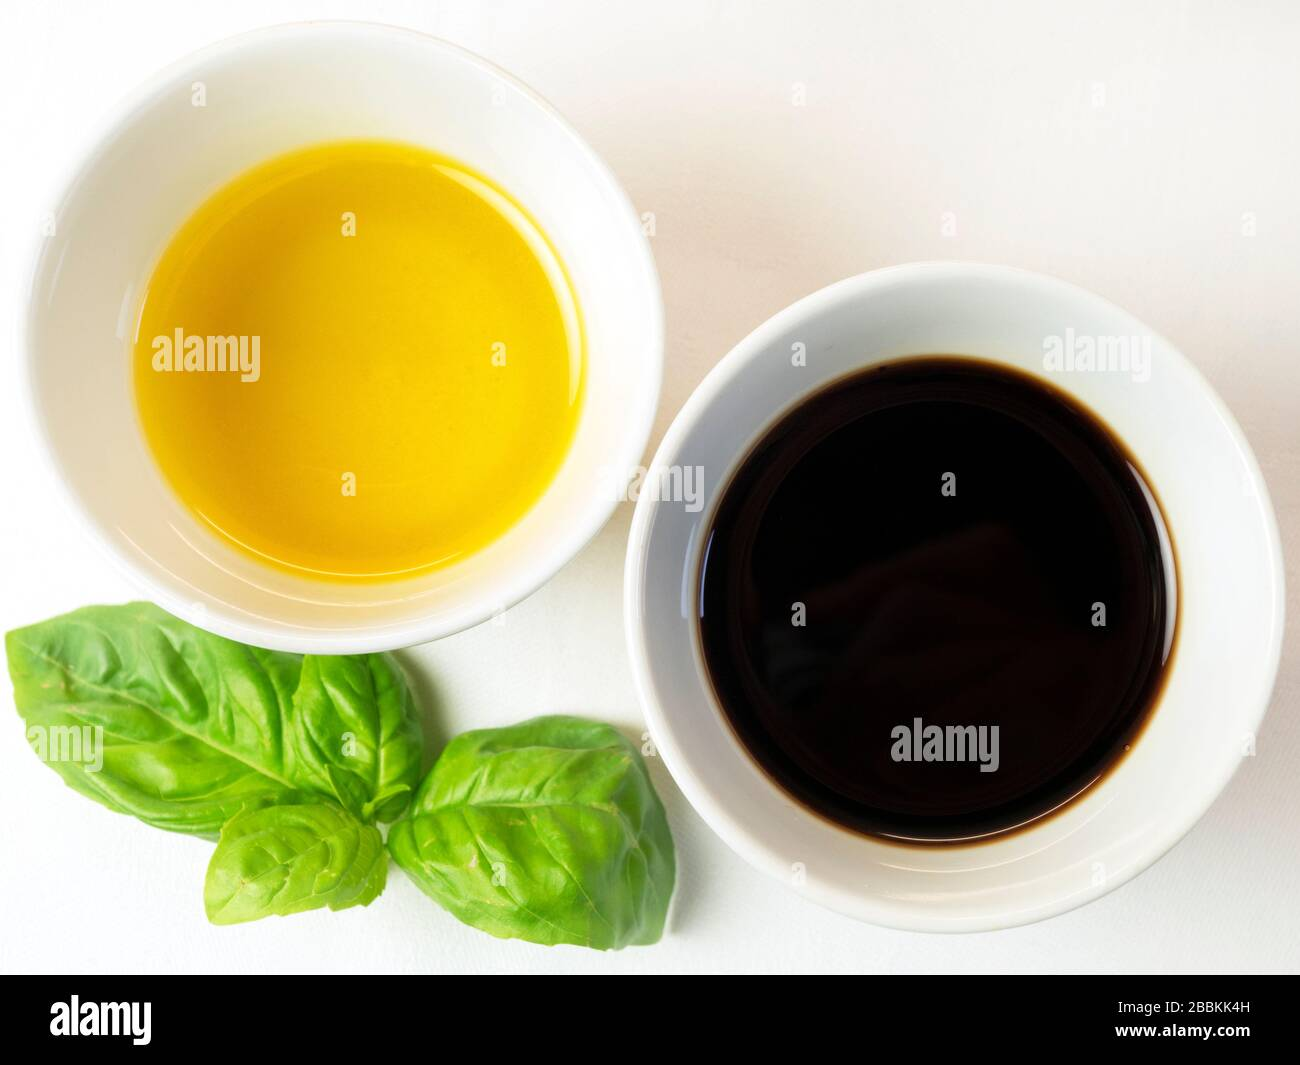 A bowl of Yorkshire cold pressed extra virgin rapeseed oil and a bowl of balsamic vinegar with a sprig of basil on a white tablecloth Stock Photo